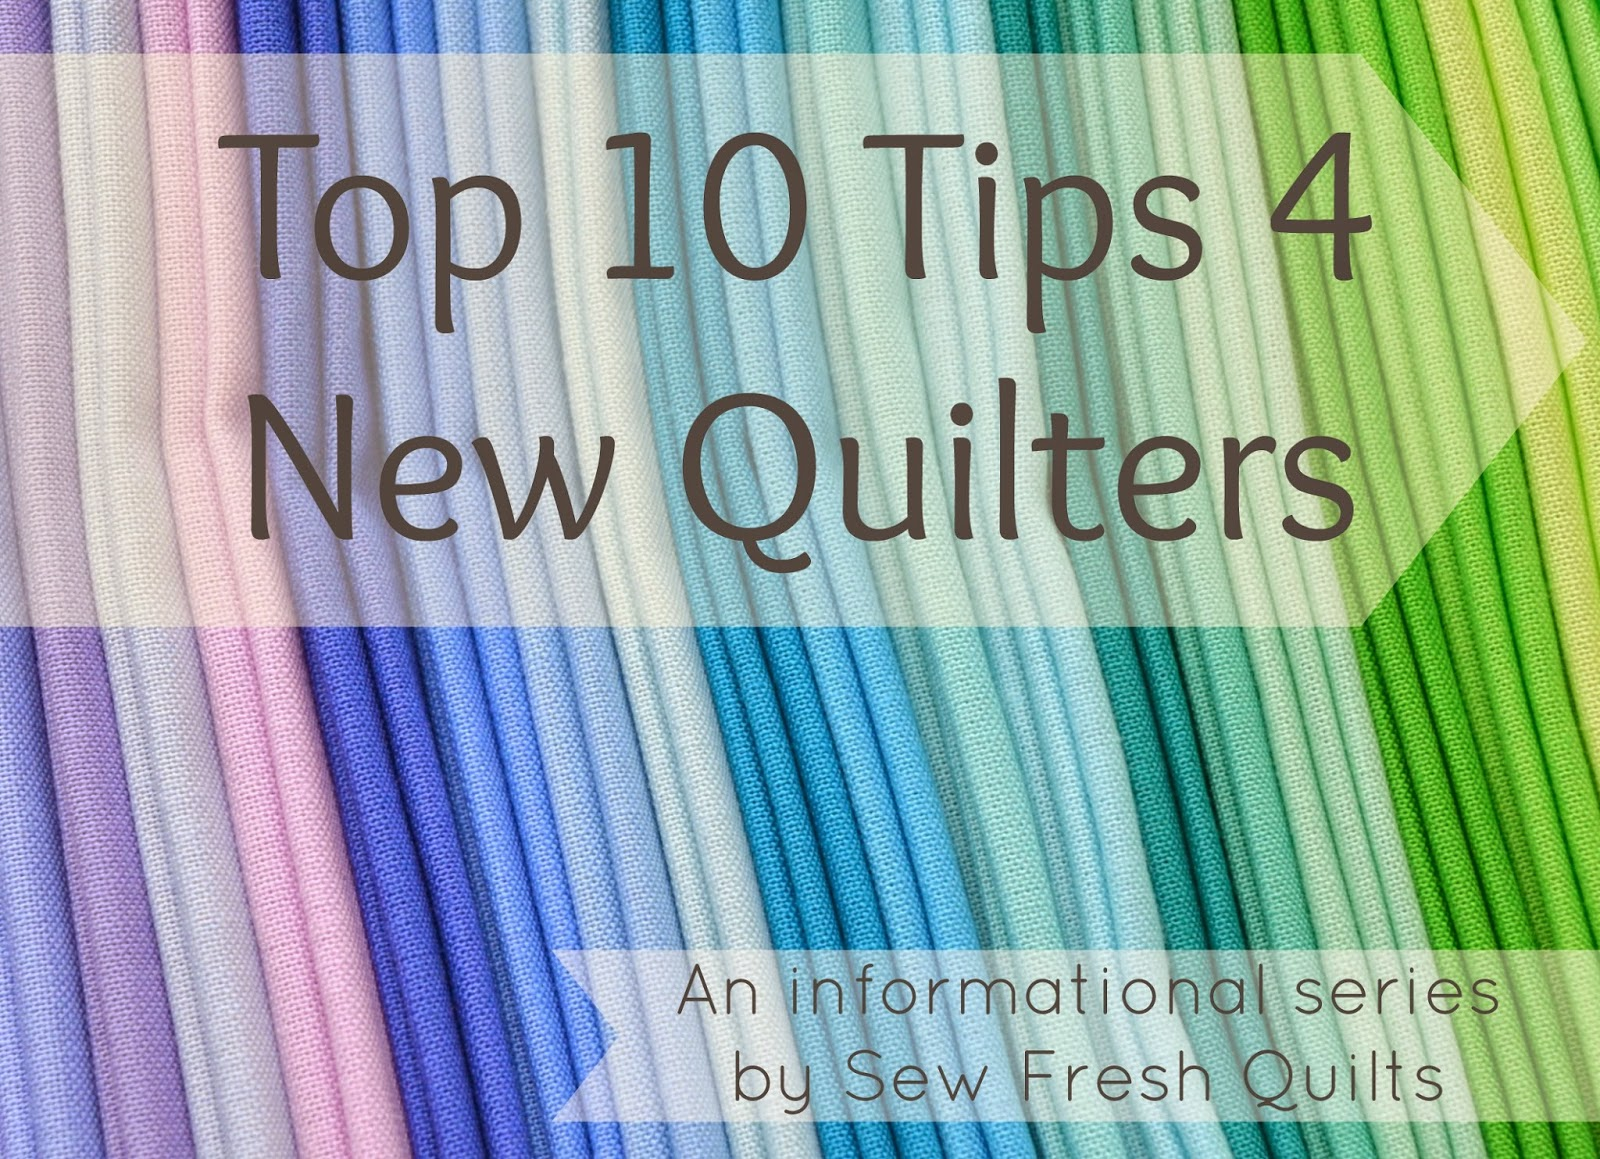 http://sewfreshquilts.blogspot.ca/2014/08/top-10-tips-for-new-quilters.html